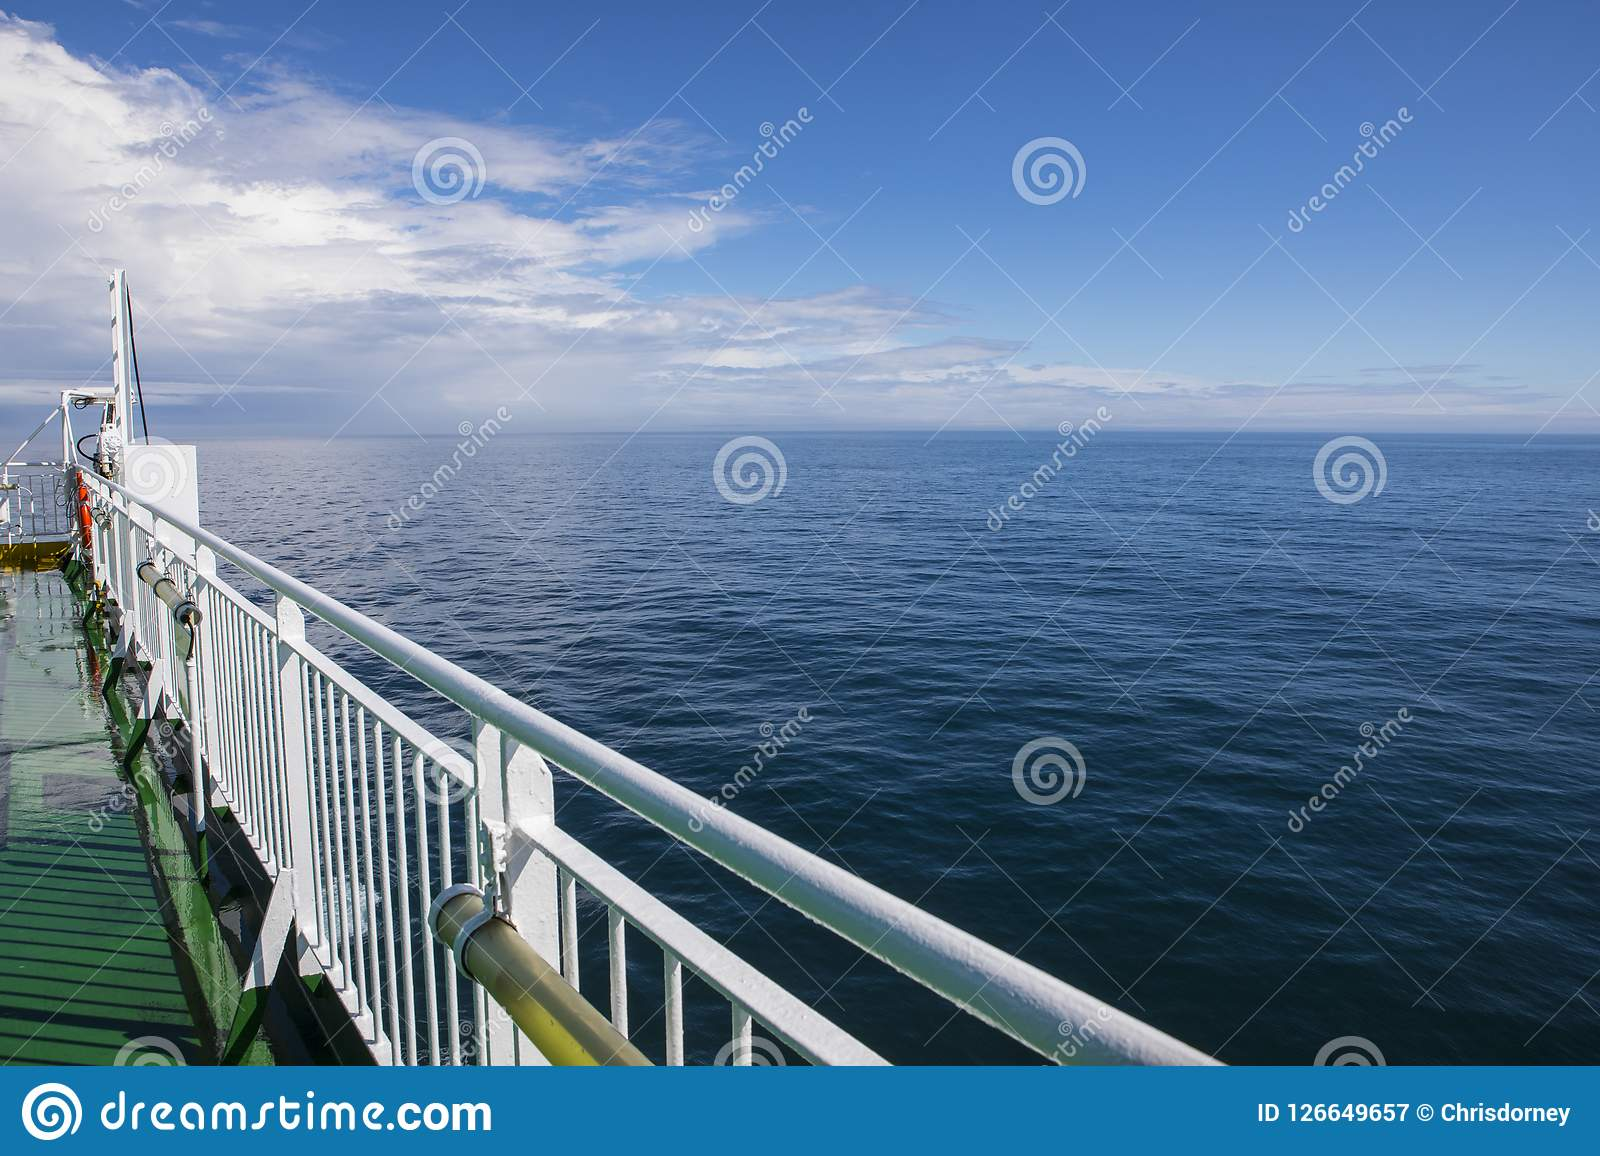 Ferry To Ireland From Holyhead >> Ferry On The Irish Sea Editorial Photography Image Of Outdoors